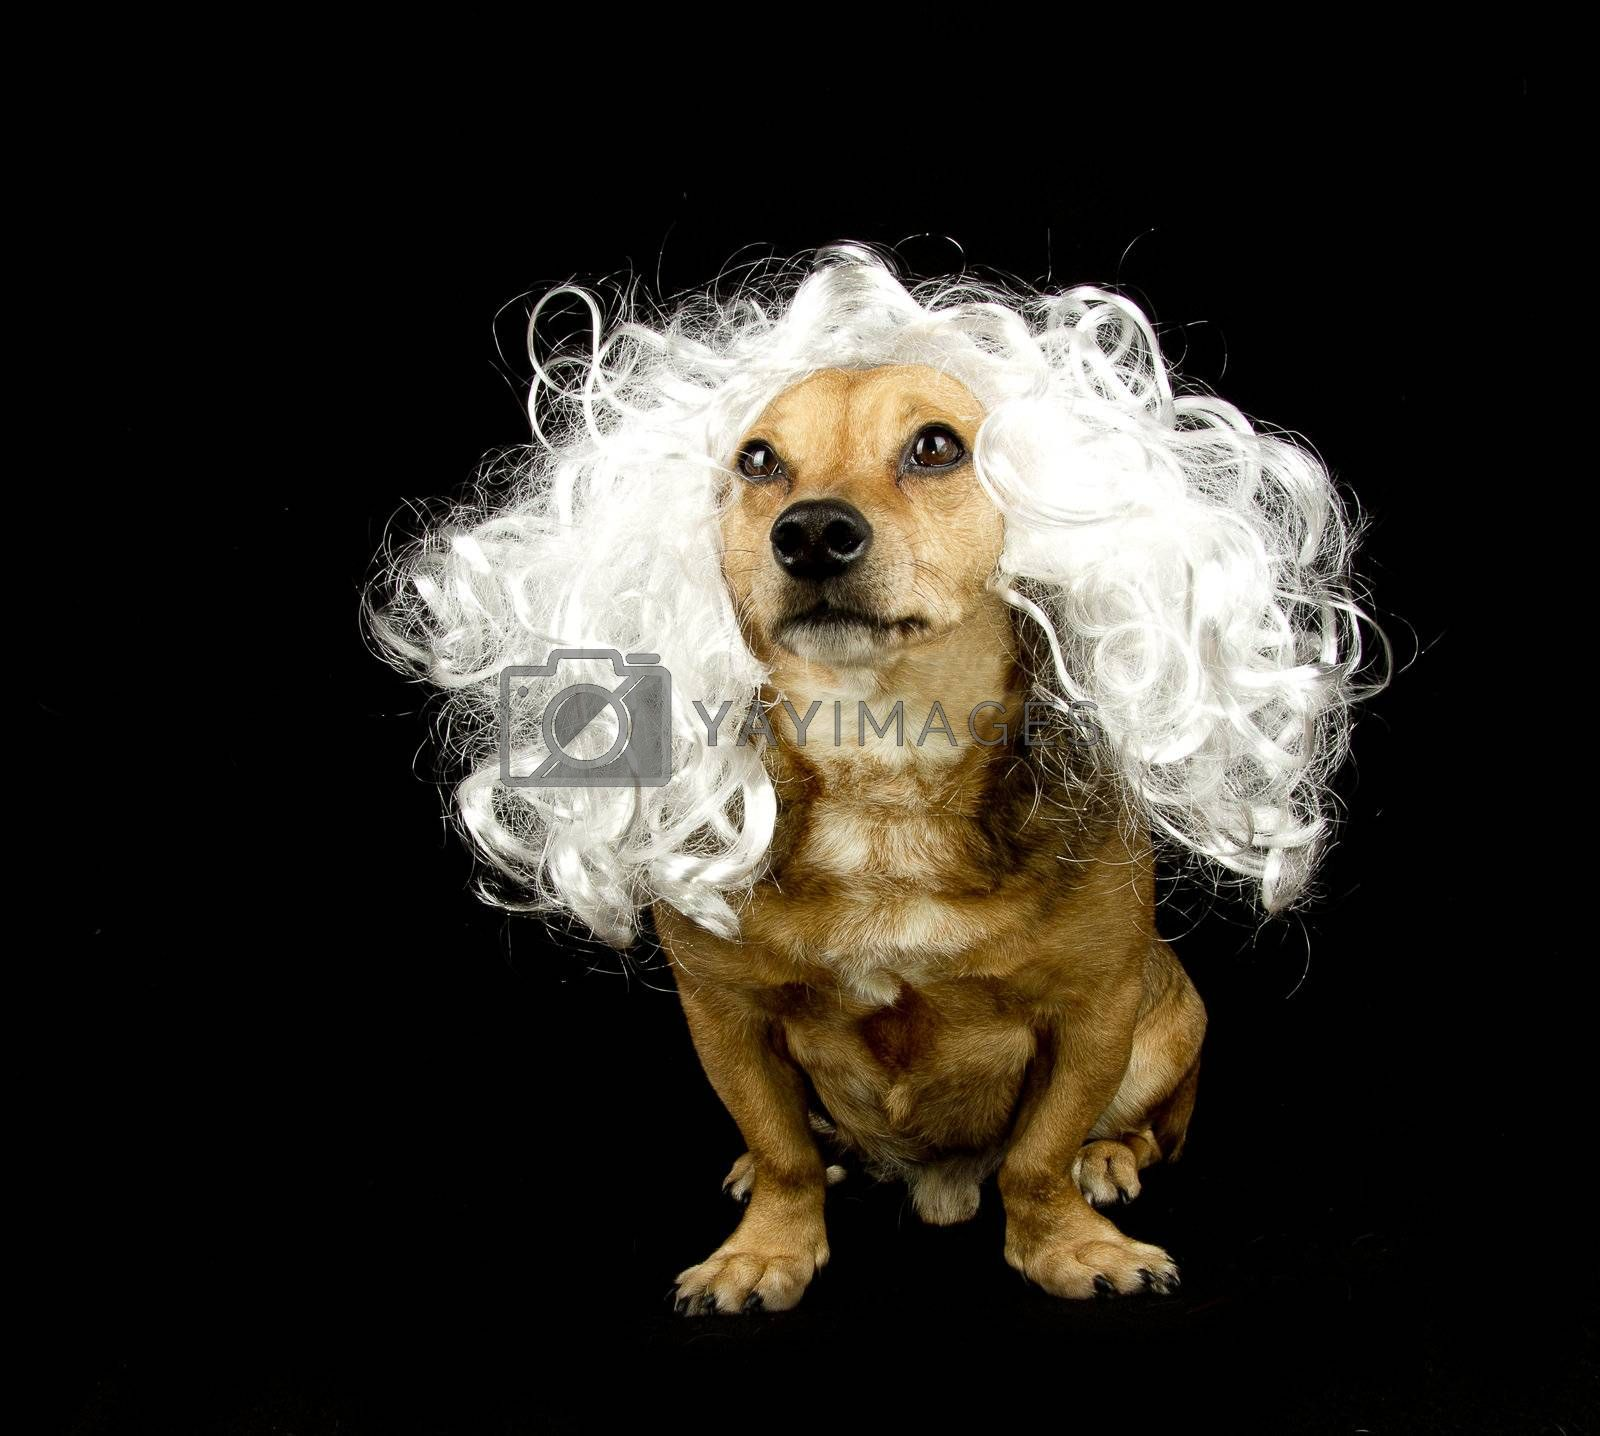 a little dog with the hair white